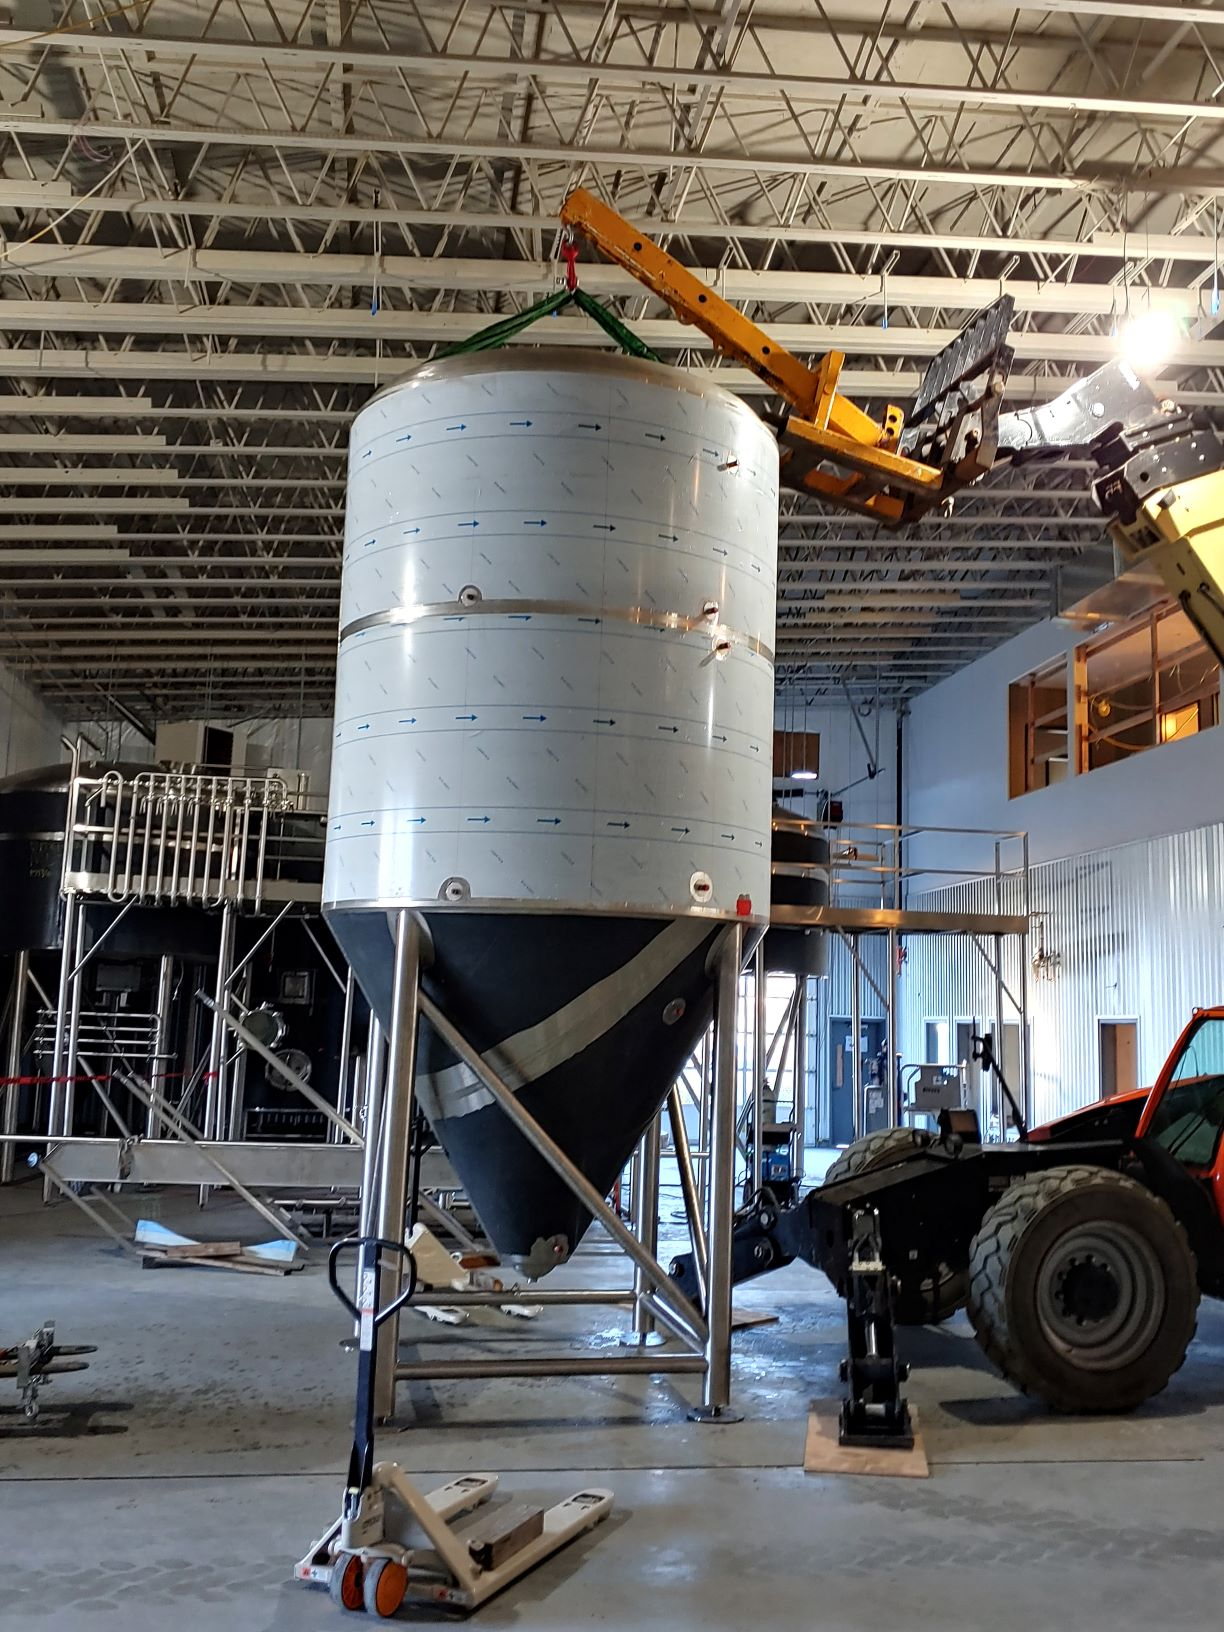 MARKS setting up new equipment for a new brewery.